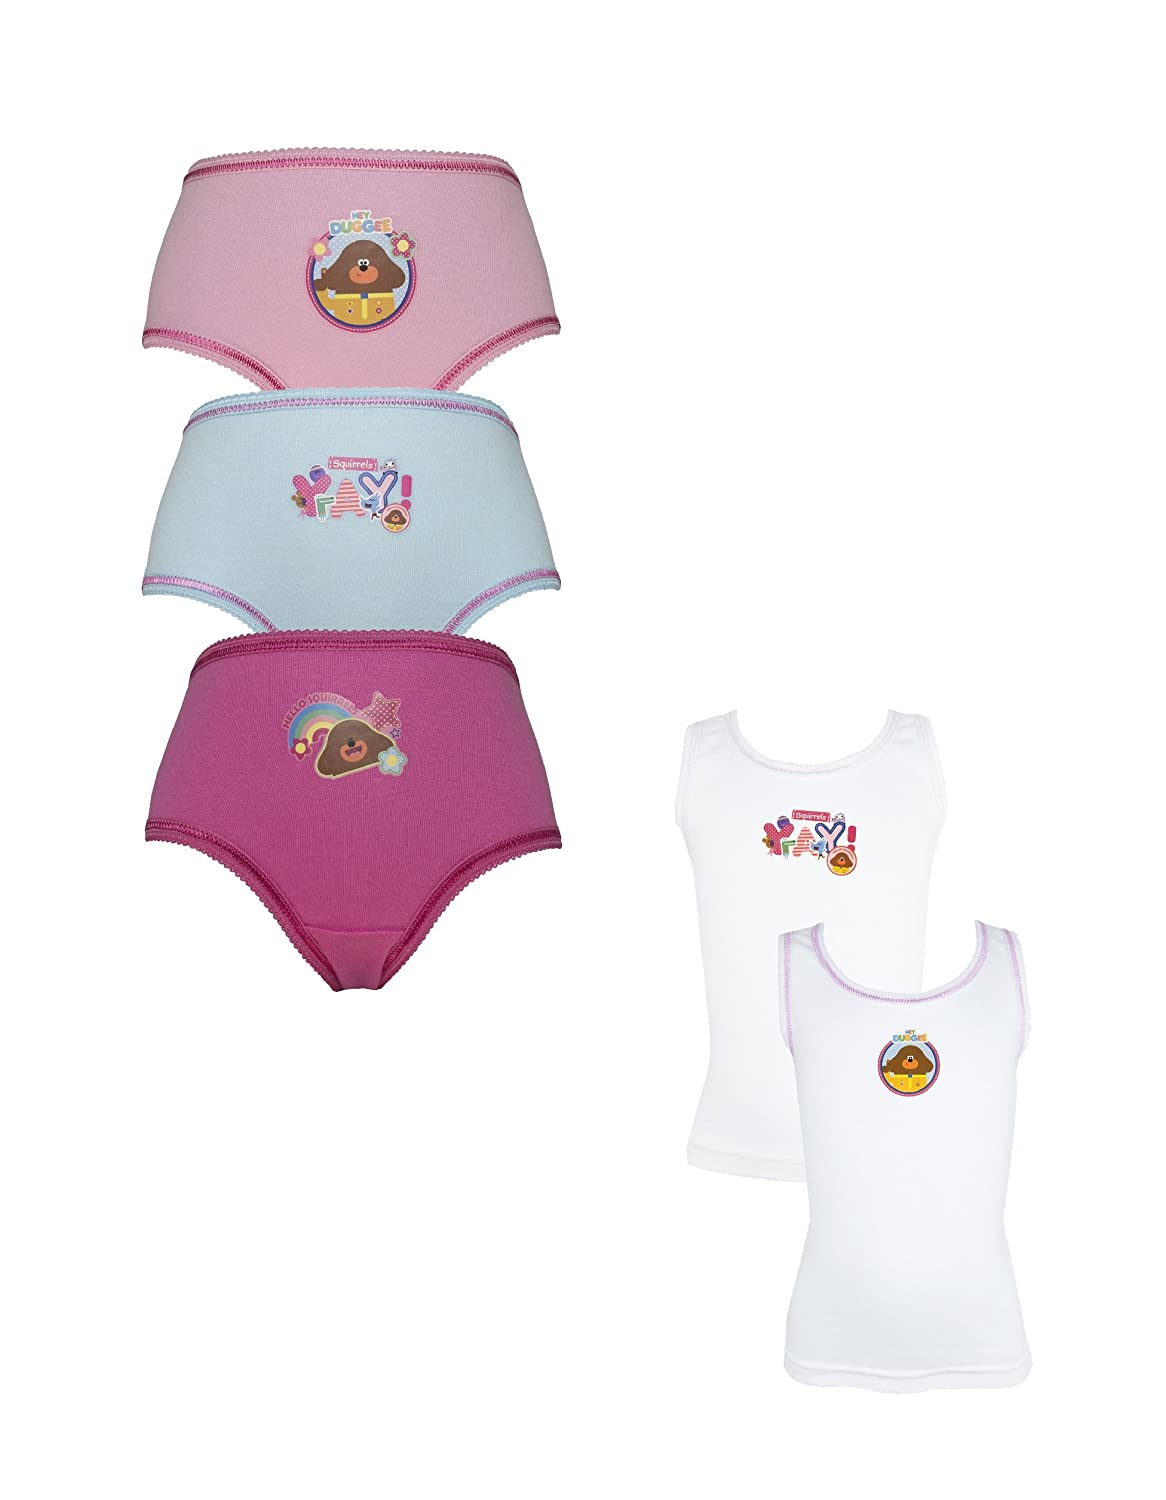 Hey Duggee Girls Pants and Vest Underwear Set 18 Months - 5 Years